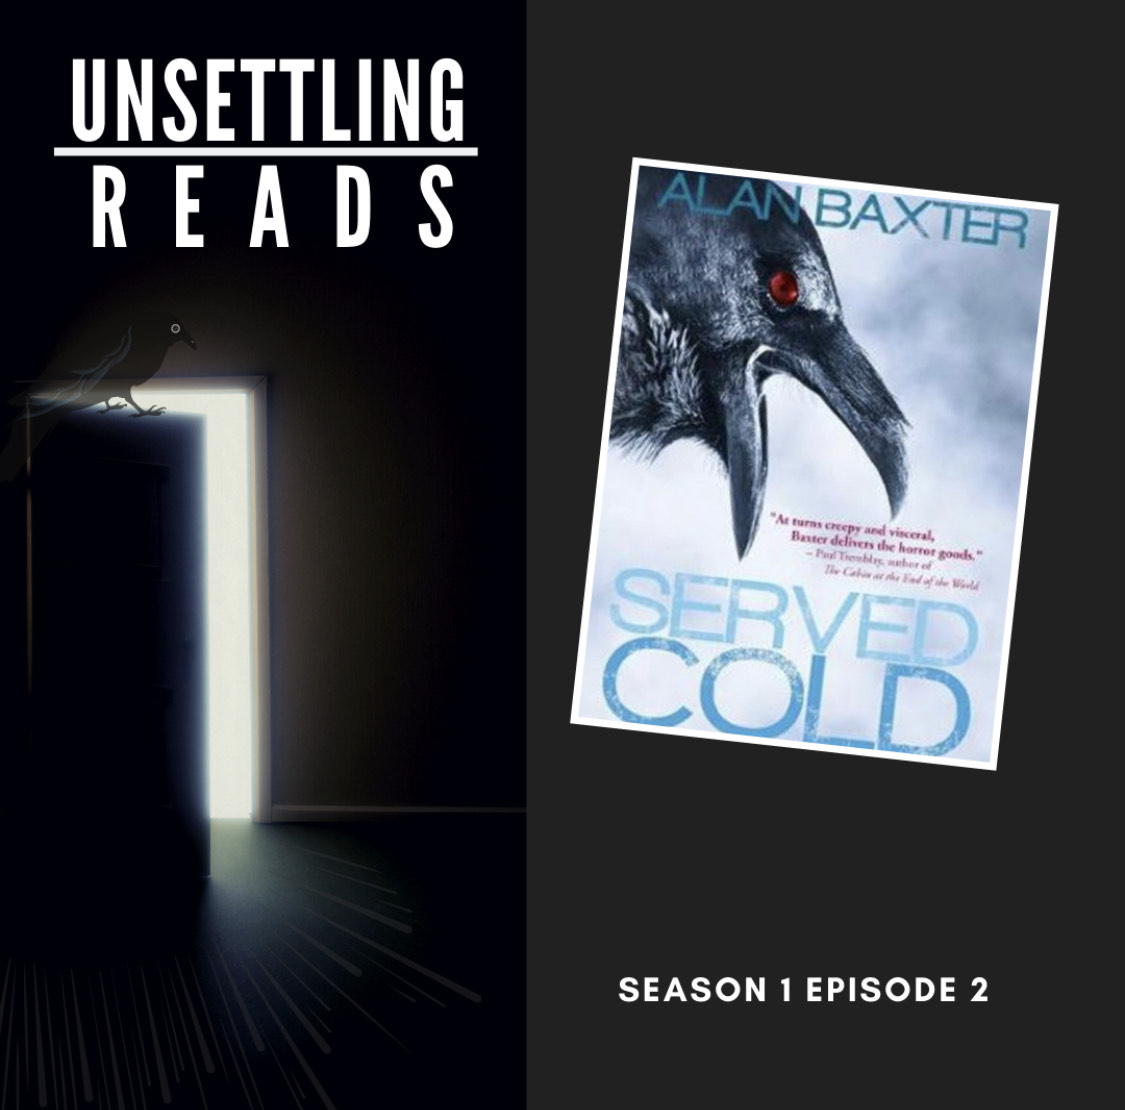 Our new review of Served Cold by @AlanBaxter is live! Check it out! unsettlingreads.squarespace.com/podcast